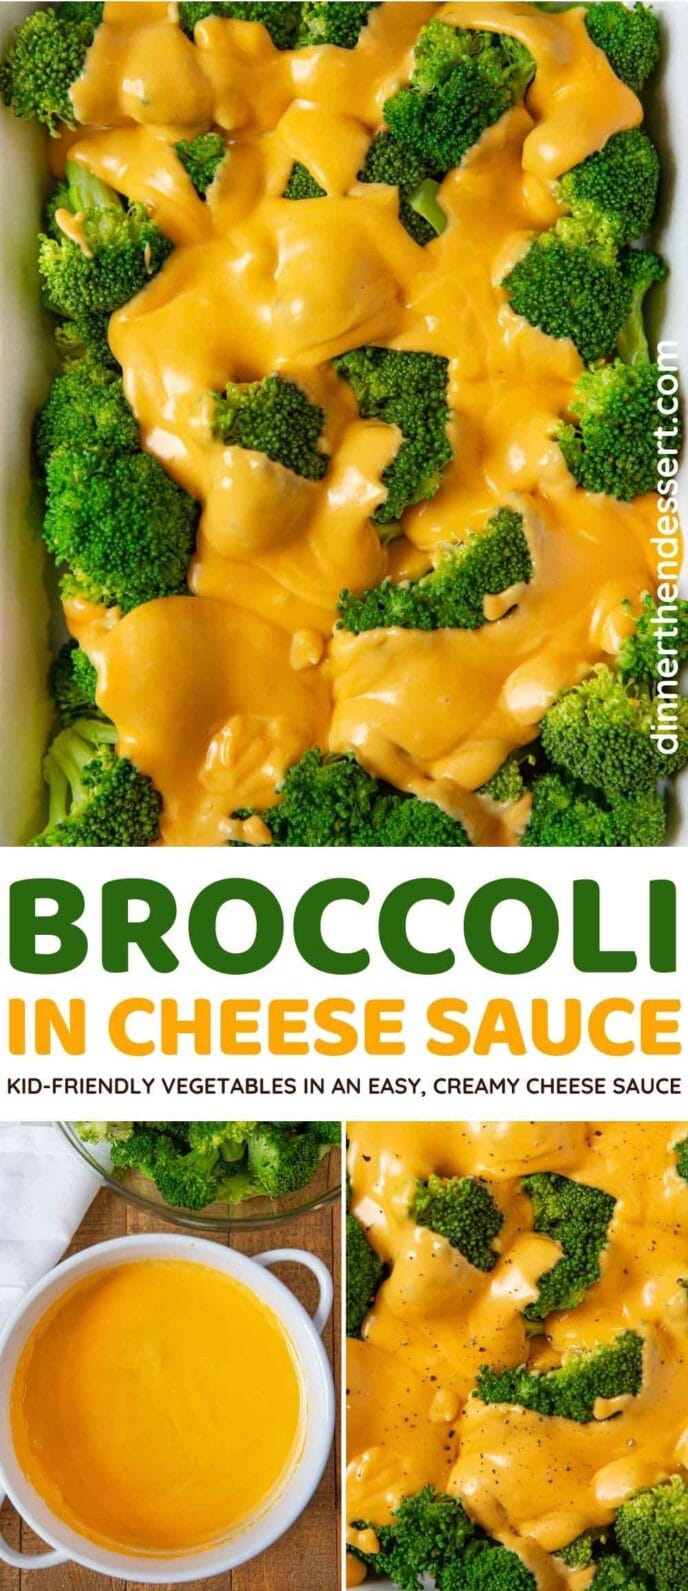 Broccoli in Cheese Saucy collage